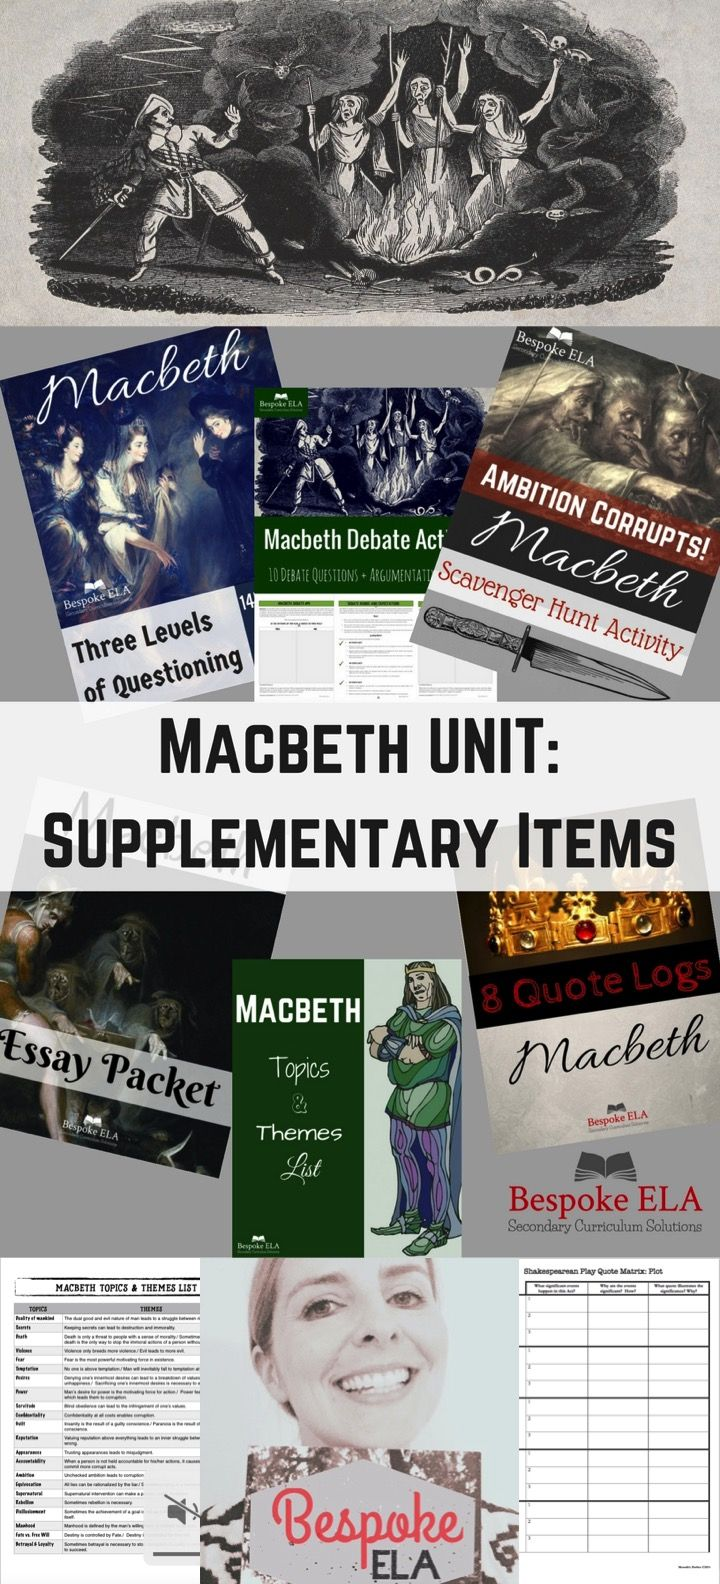 best ideas about macbeth analysis shakespeare macbeth bundle supplementary materials for any macbeth unit